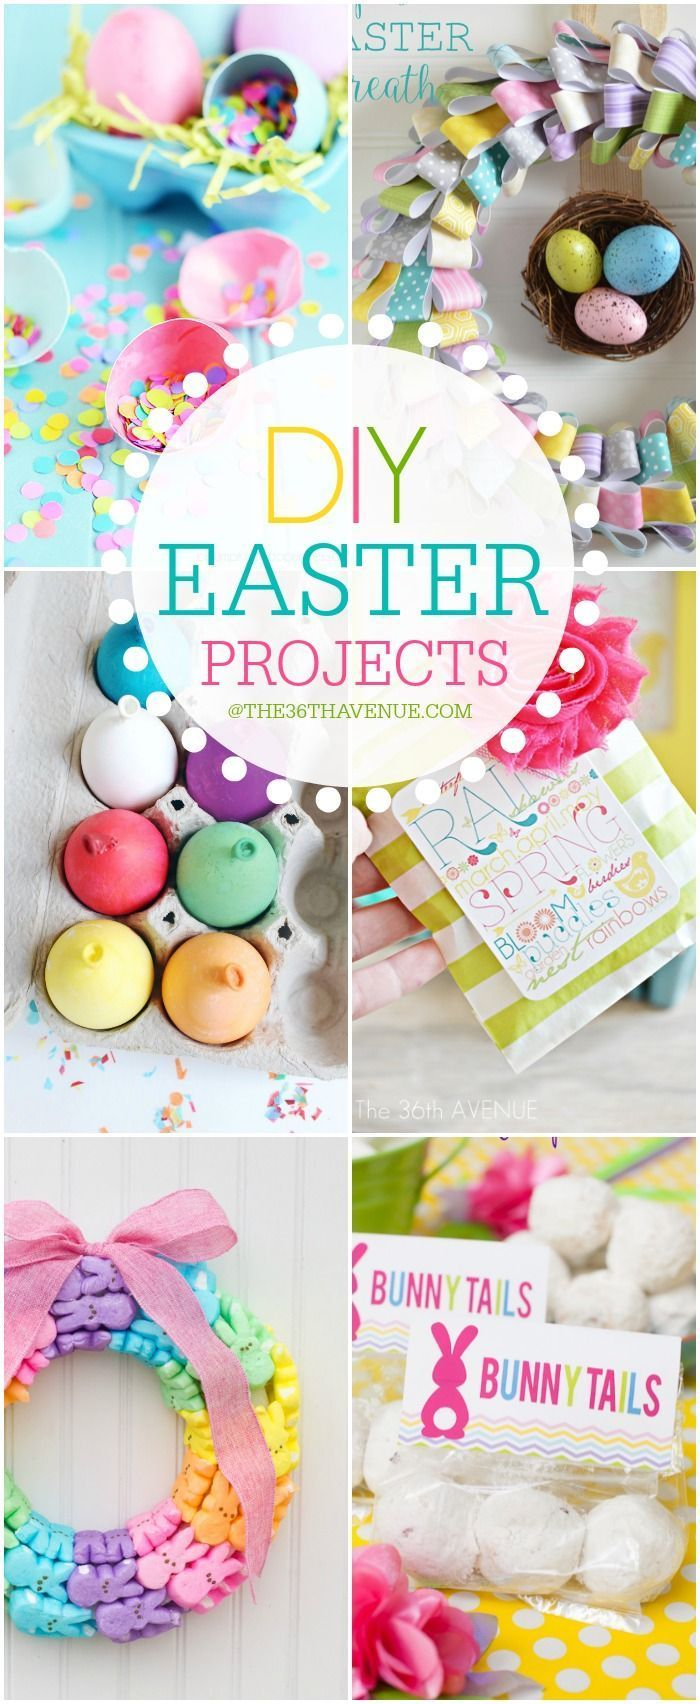 297 Best Images About Easter On Pinterest Pottery Barn